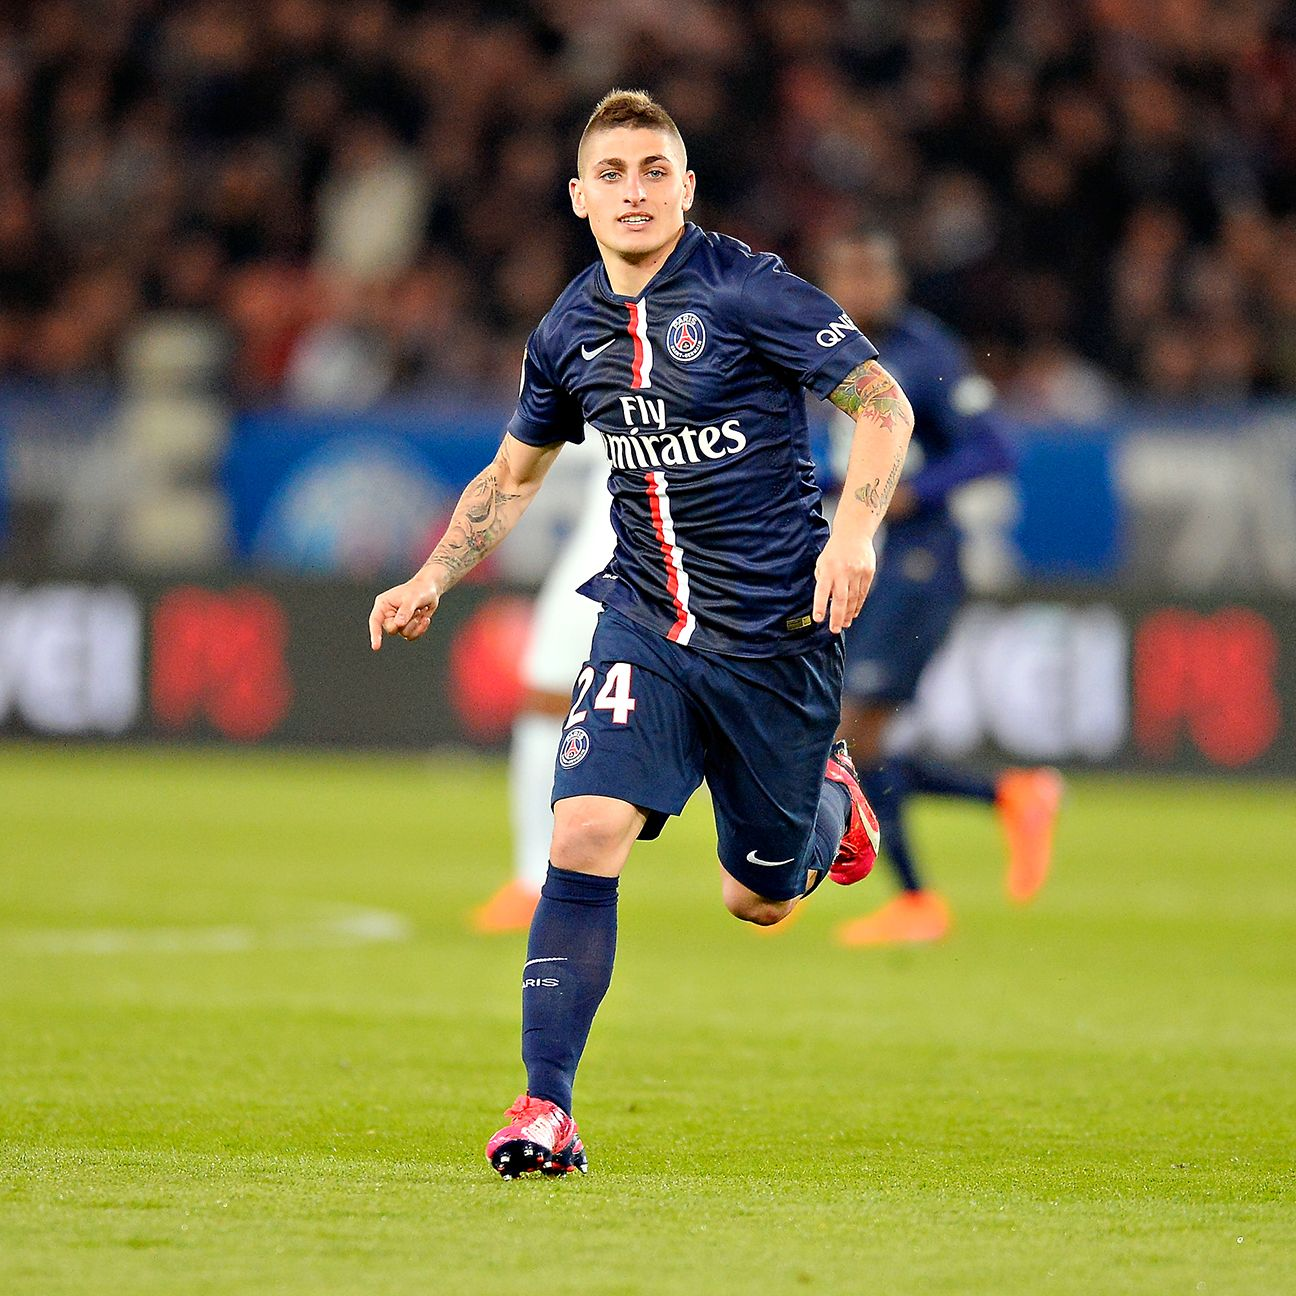 Injuries have limited Marco Verratti to just 13 matches in all competitions this season for PSG.